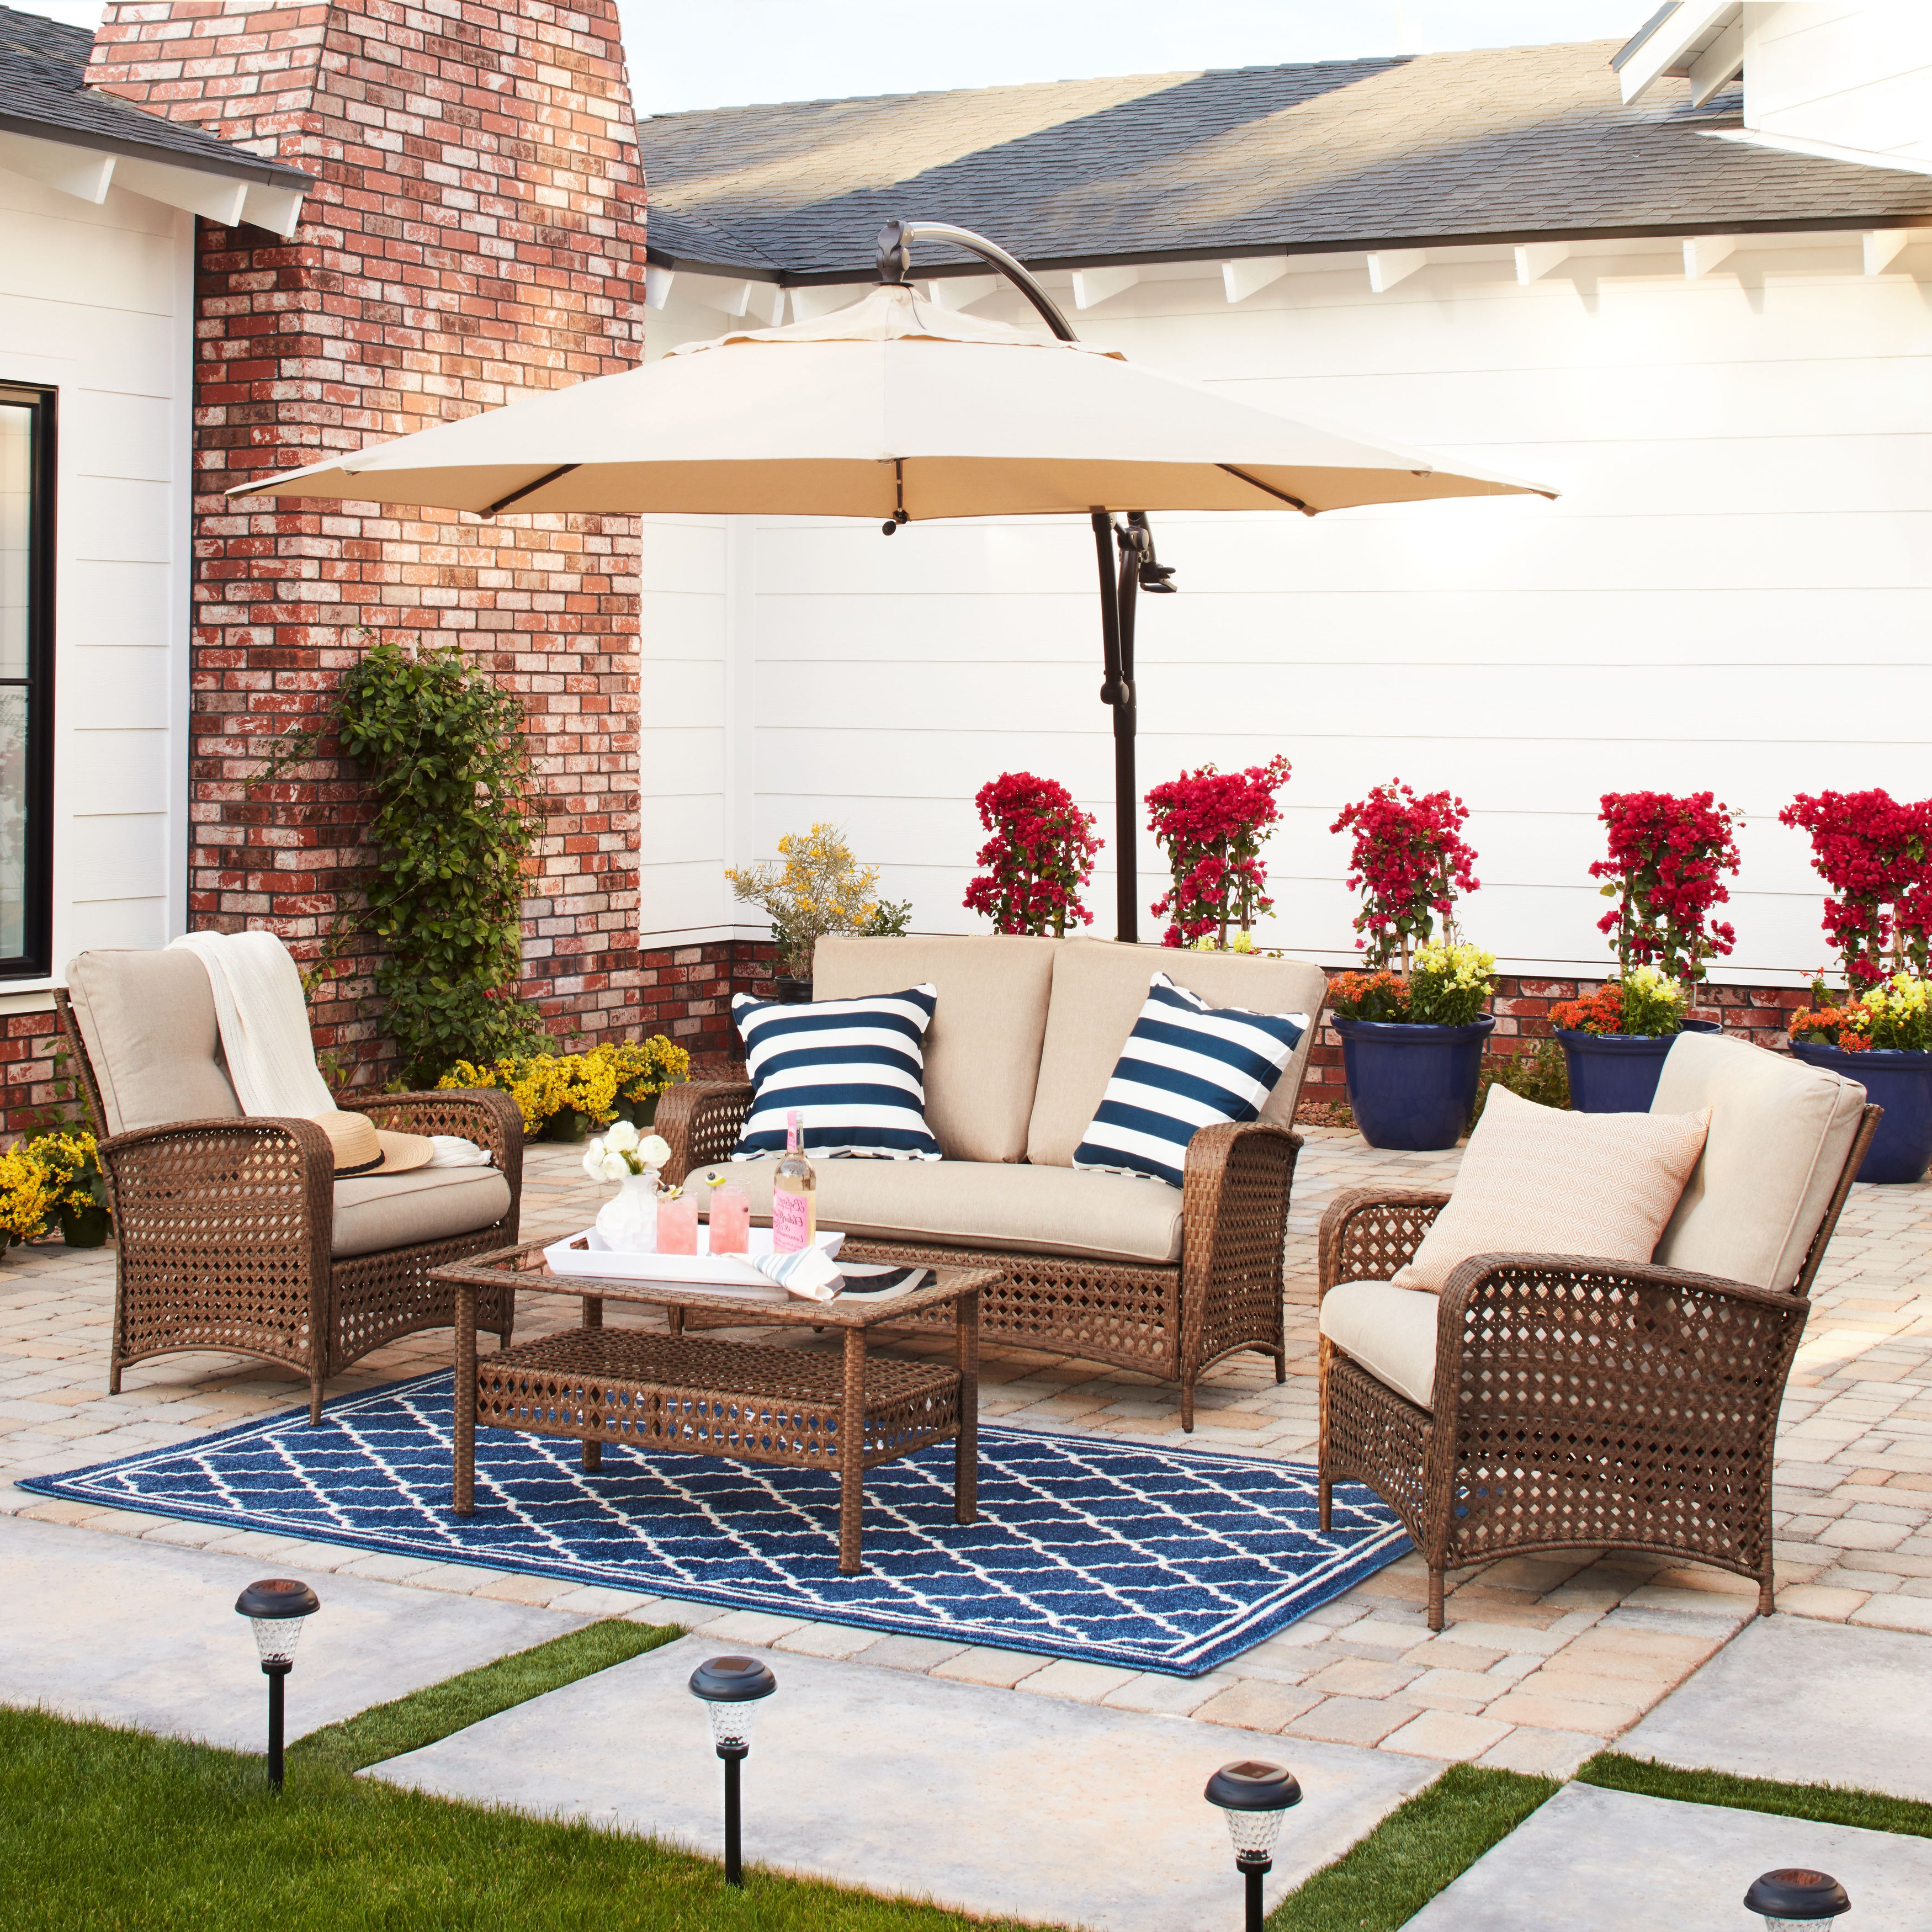 Cosco Outdoor Steel Woven Wicker Chaise Lounge Chairs In Preferred Cosco Outdoor Steel Woven Wicker Patio Conversation Set With Coffee Table (View 14 of 25)